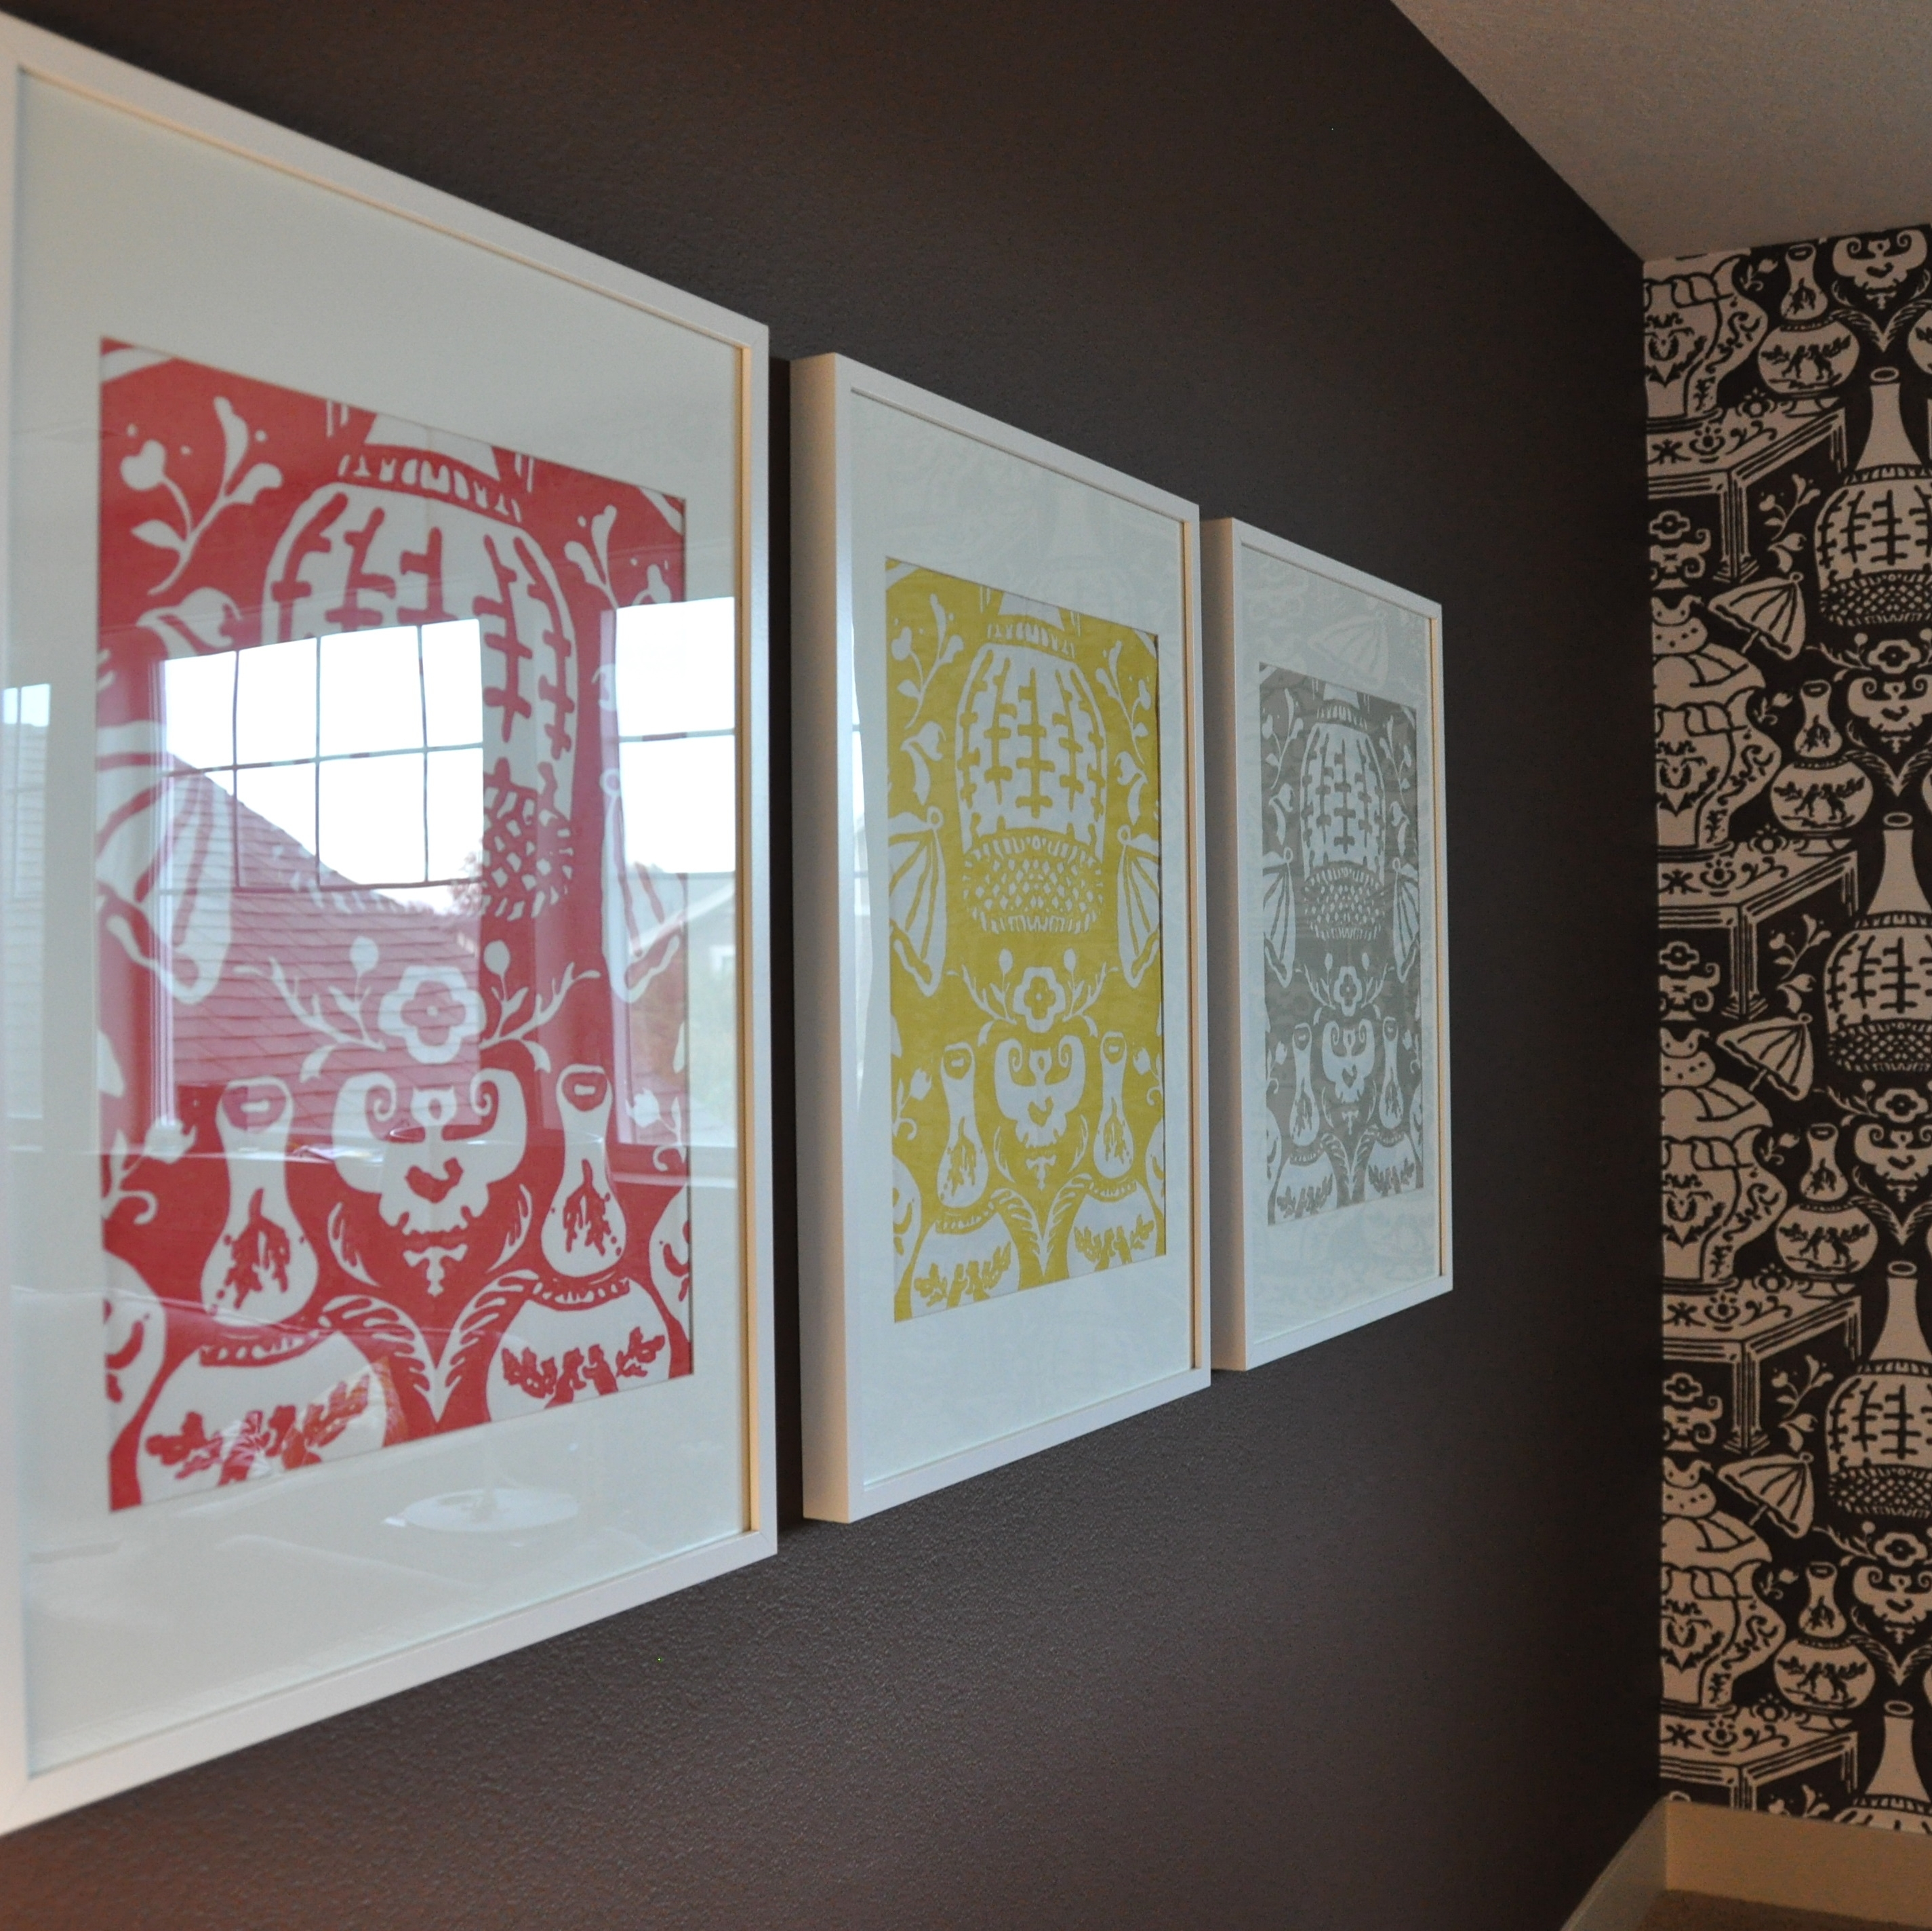 Wallpaper Samples In Ikea Ribba Frames = Simple & Fun Art! | Great Within Most Up To Date Fabric Decoupage Wall Art (Gallery 11 of 15)